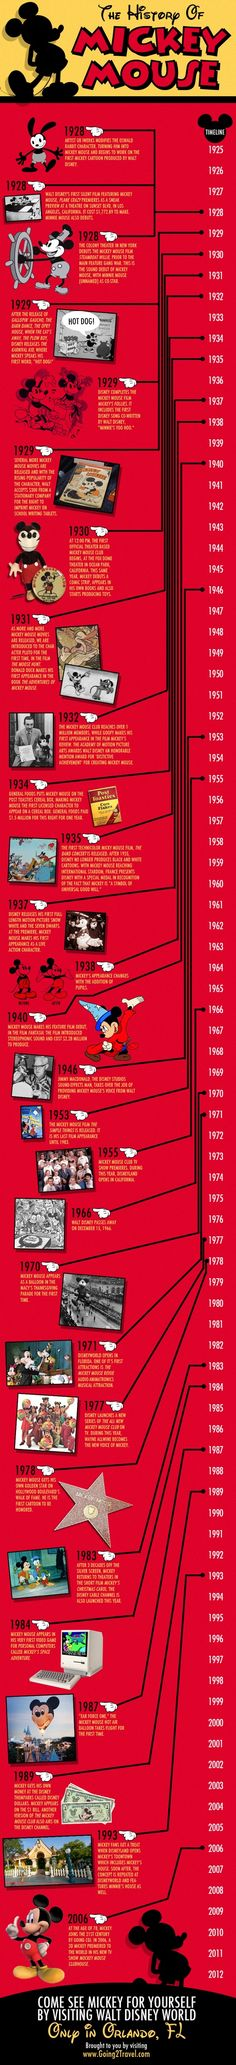 The History of Mickey Mouse